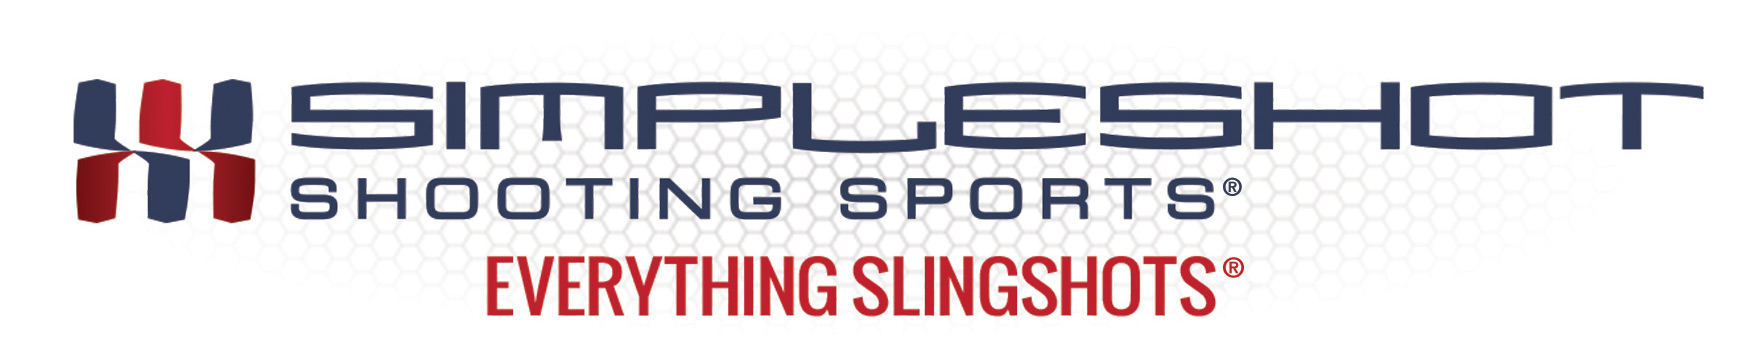 SimpleShot Shooting Sports. Everything Slingshots.